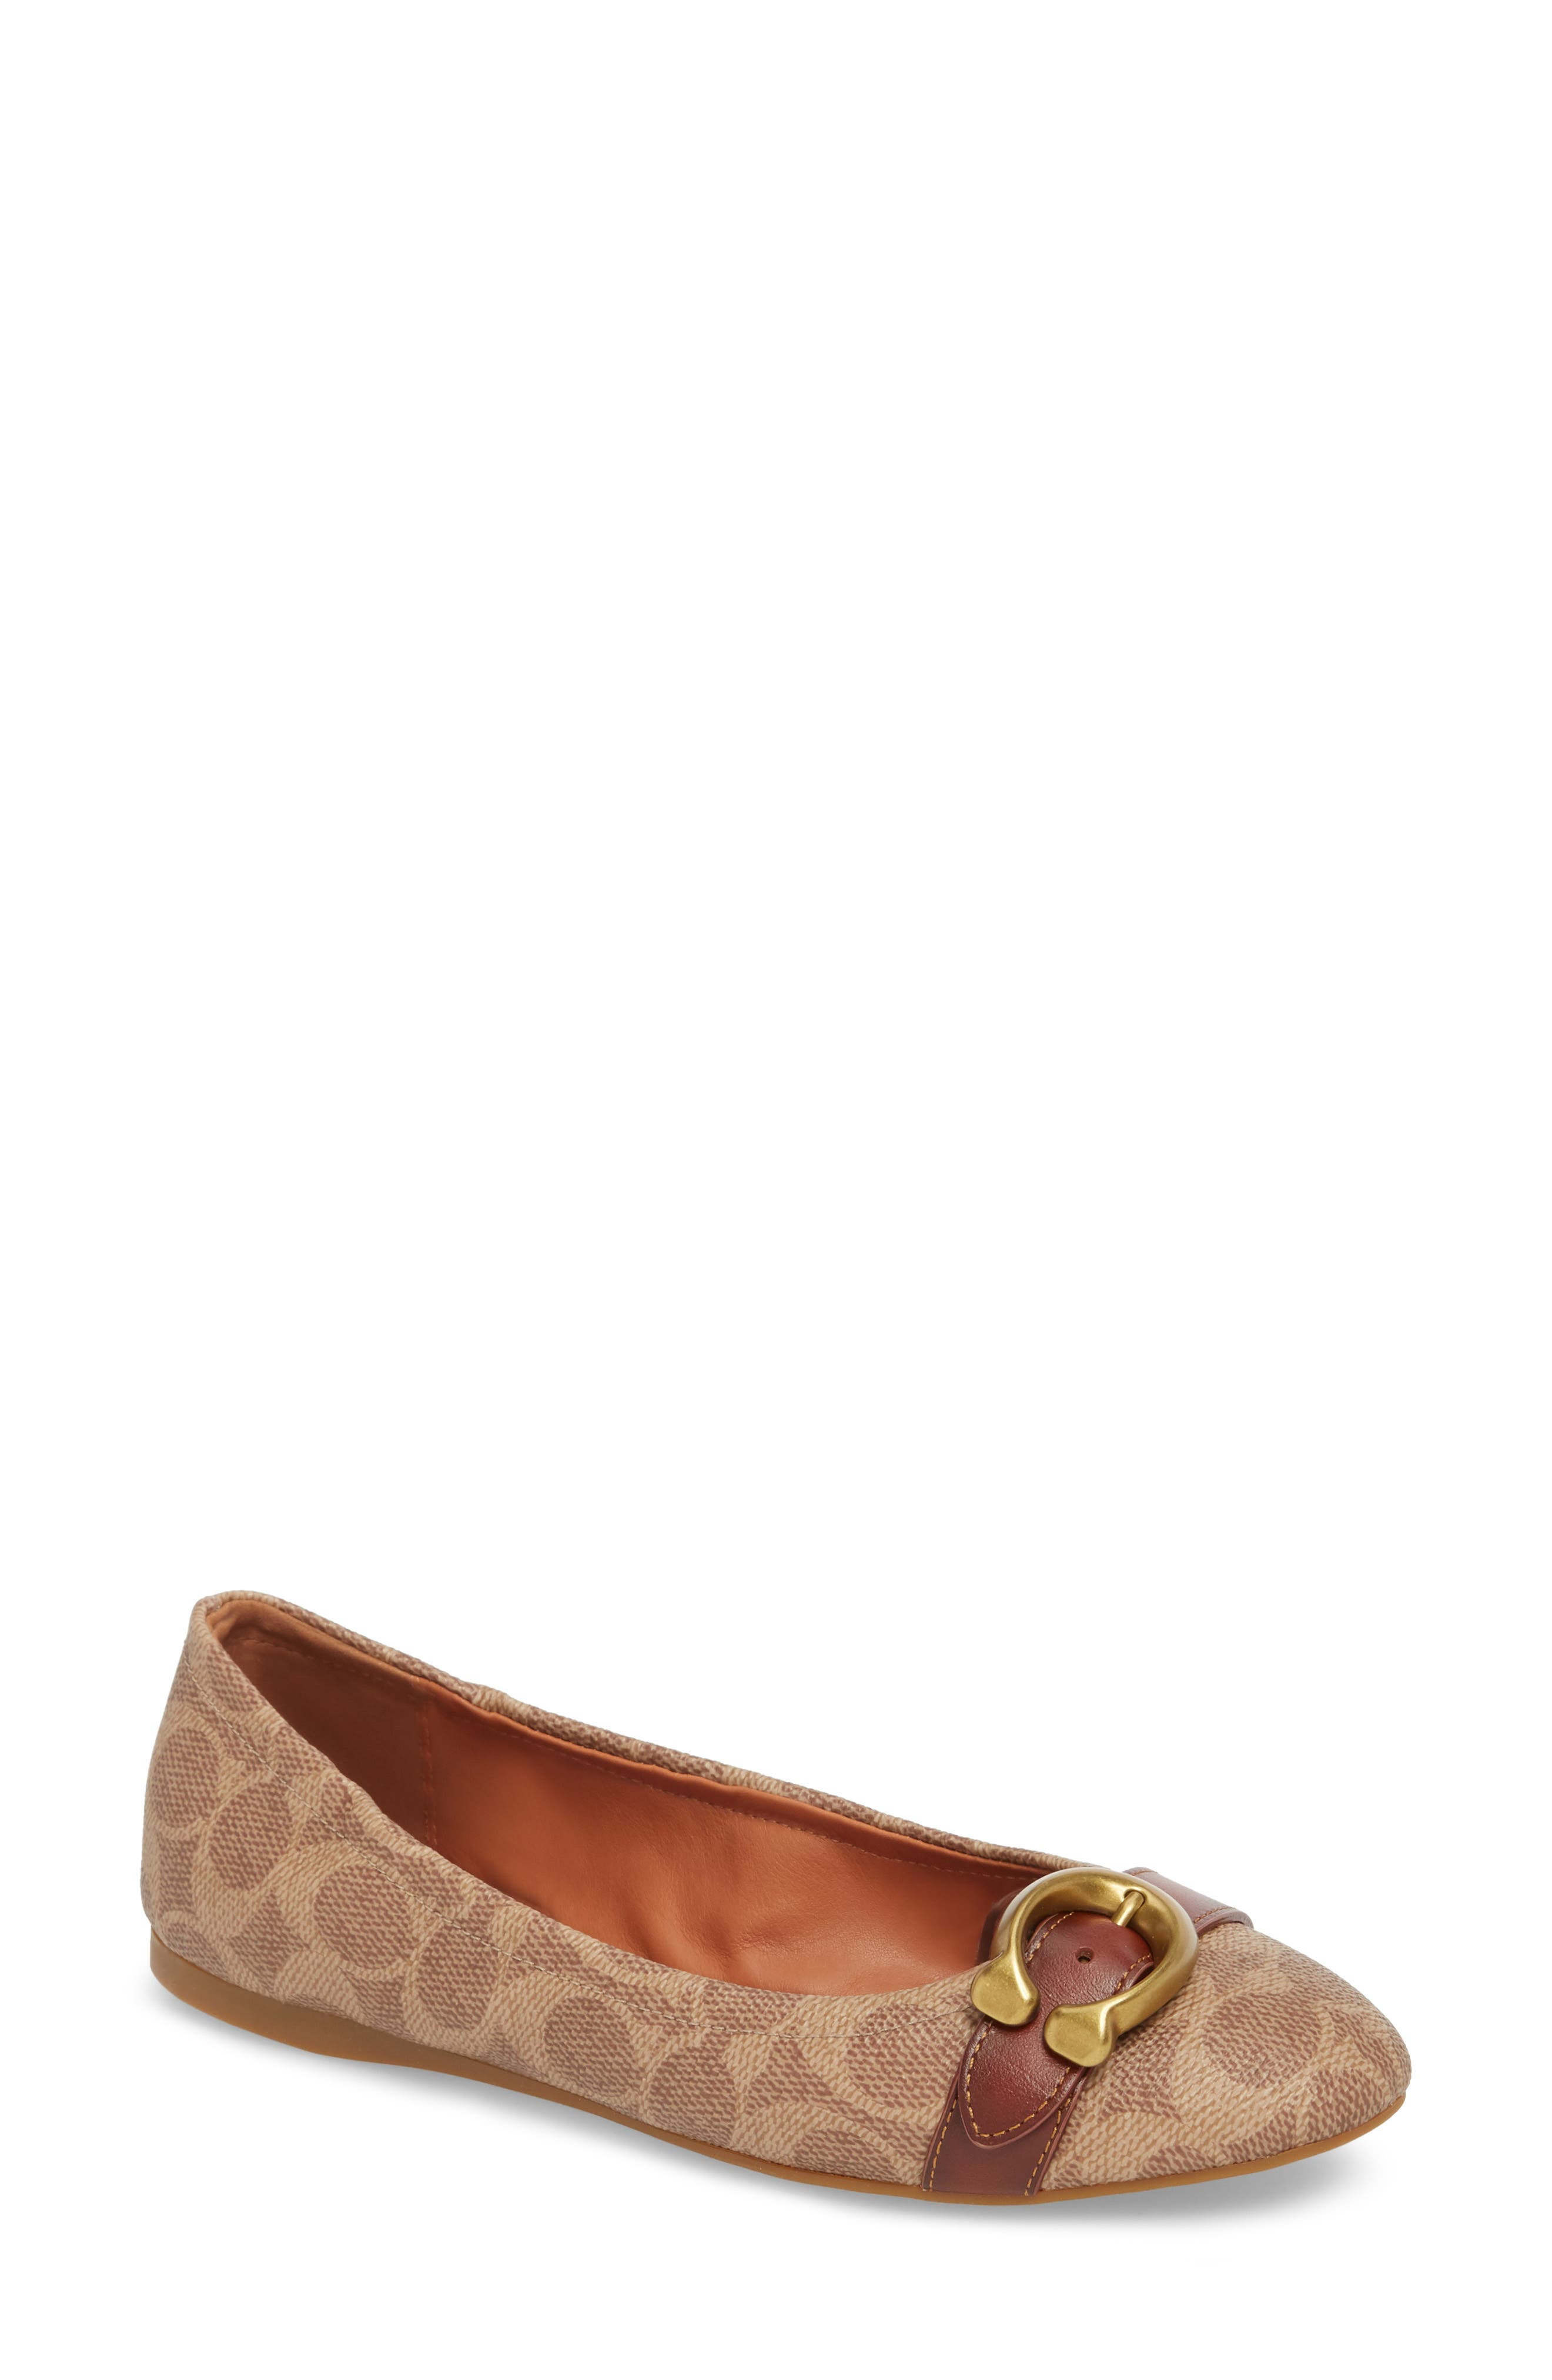 Stanton Buckle Flat,                         Main,                         color, BROWN LEATHER